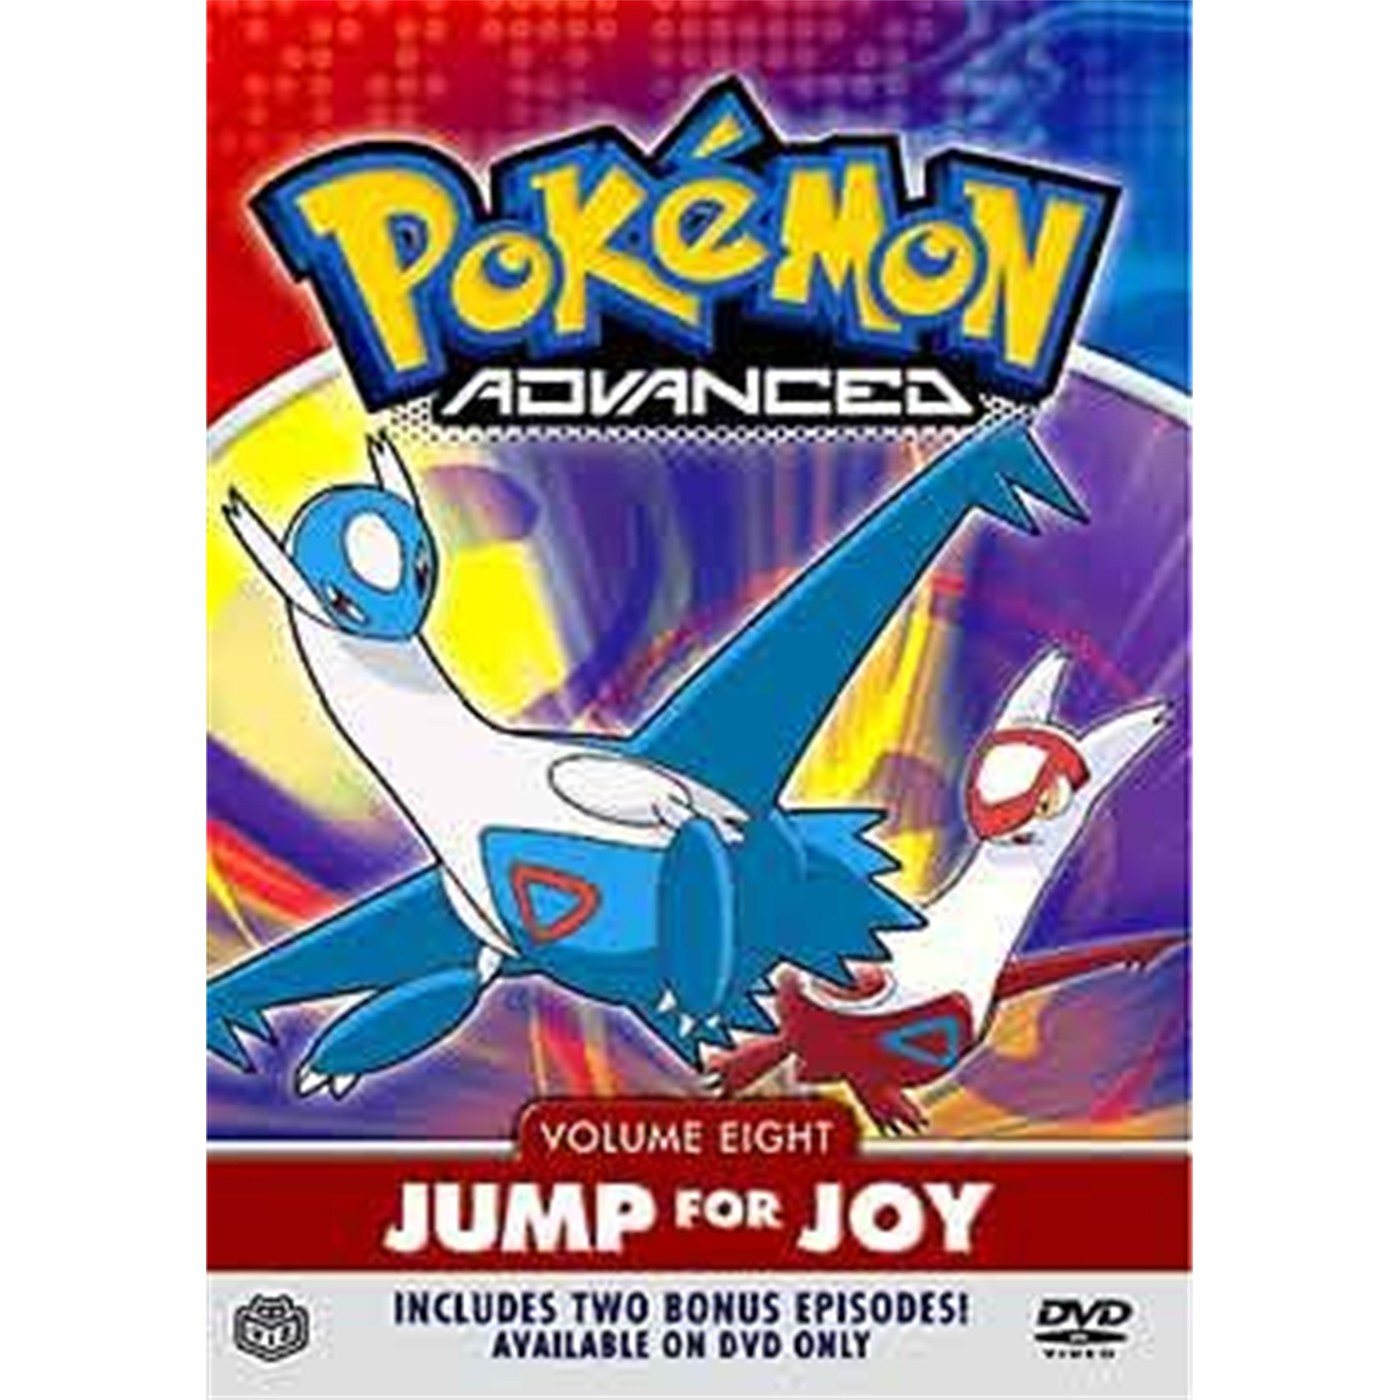 Pokemon Advanced, Vol. 8: Jump For Joy (DVD)